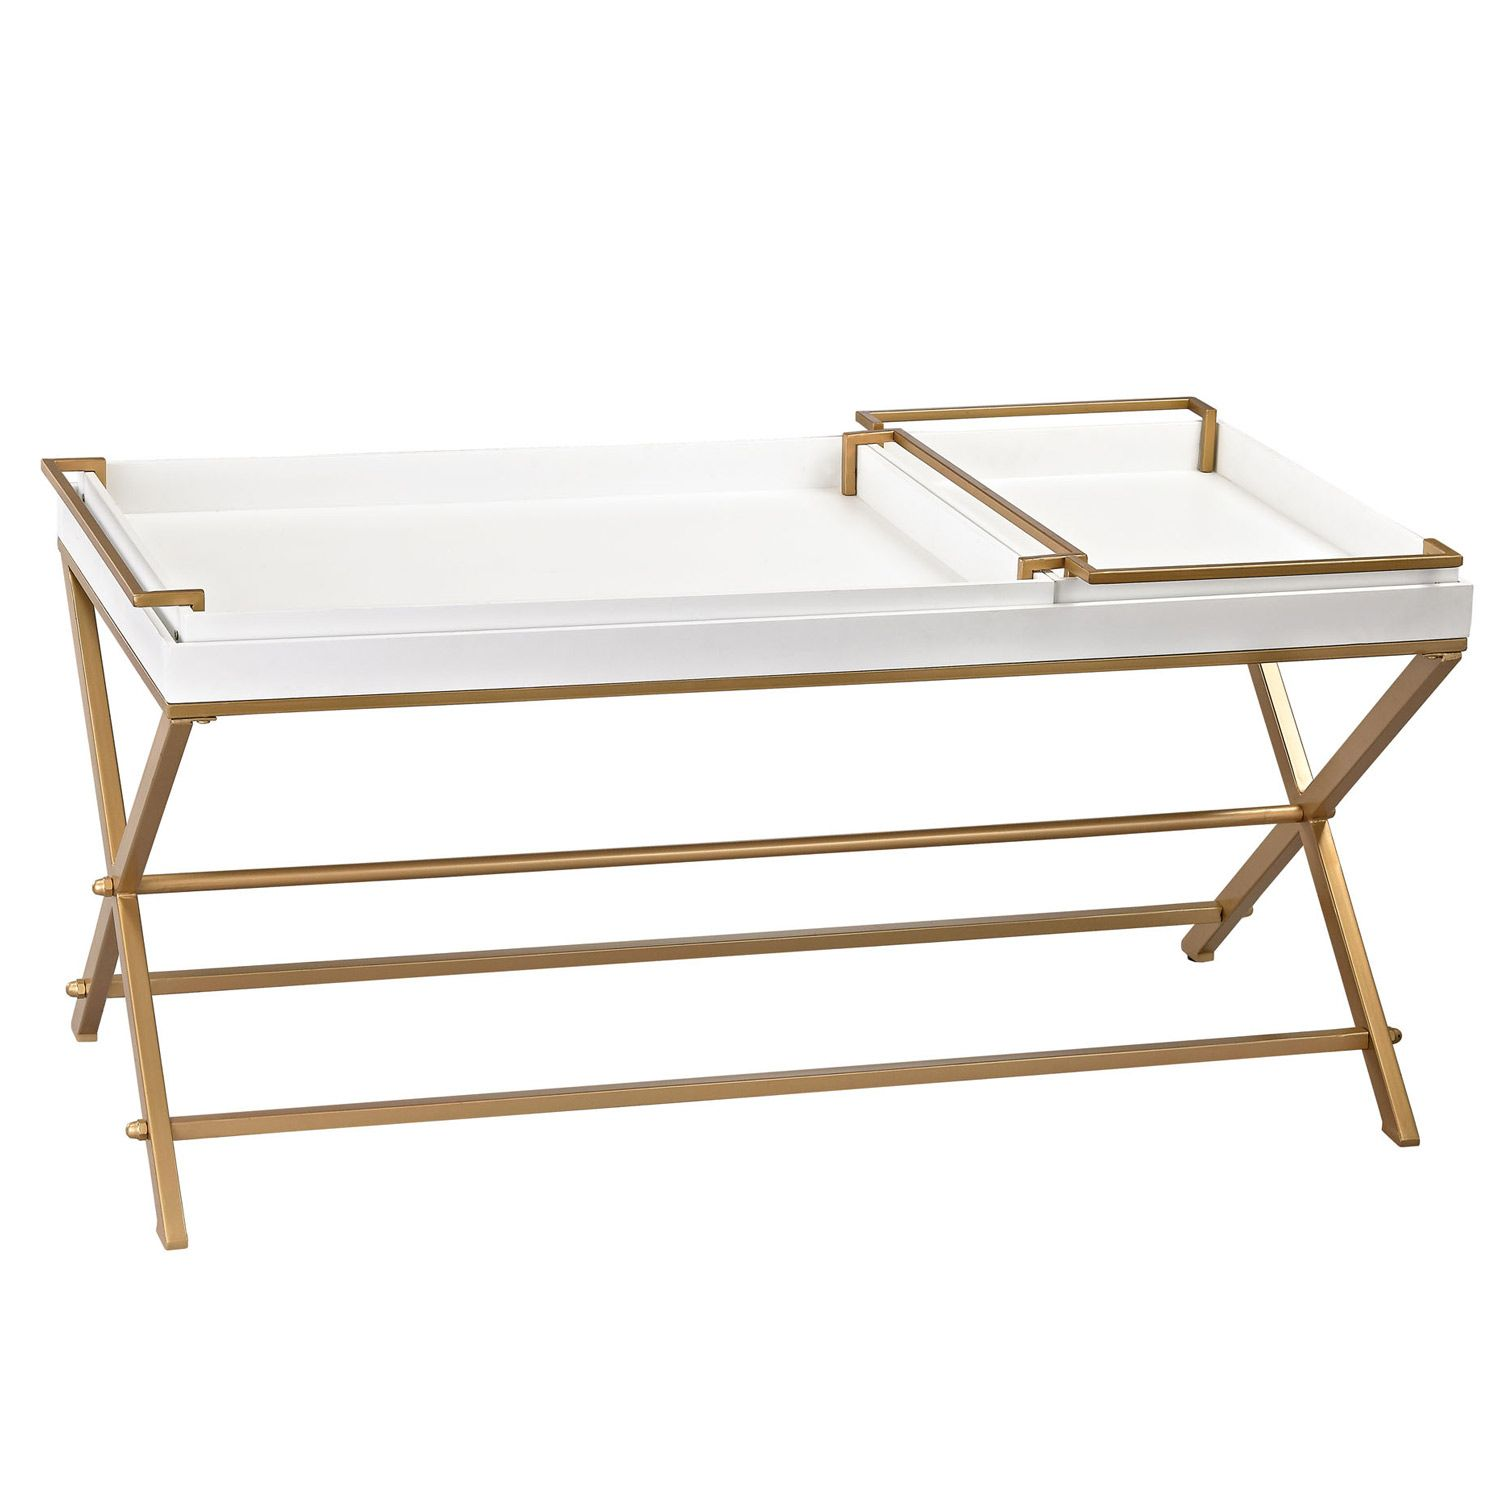 the white and gold coffee table offers a stunning surface with